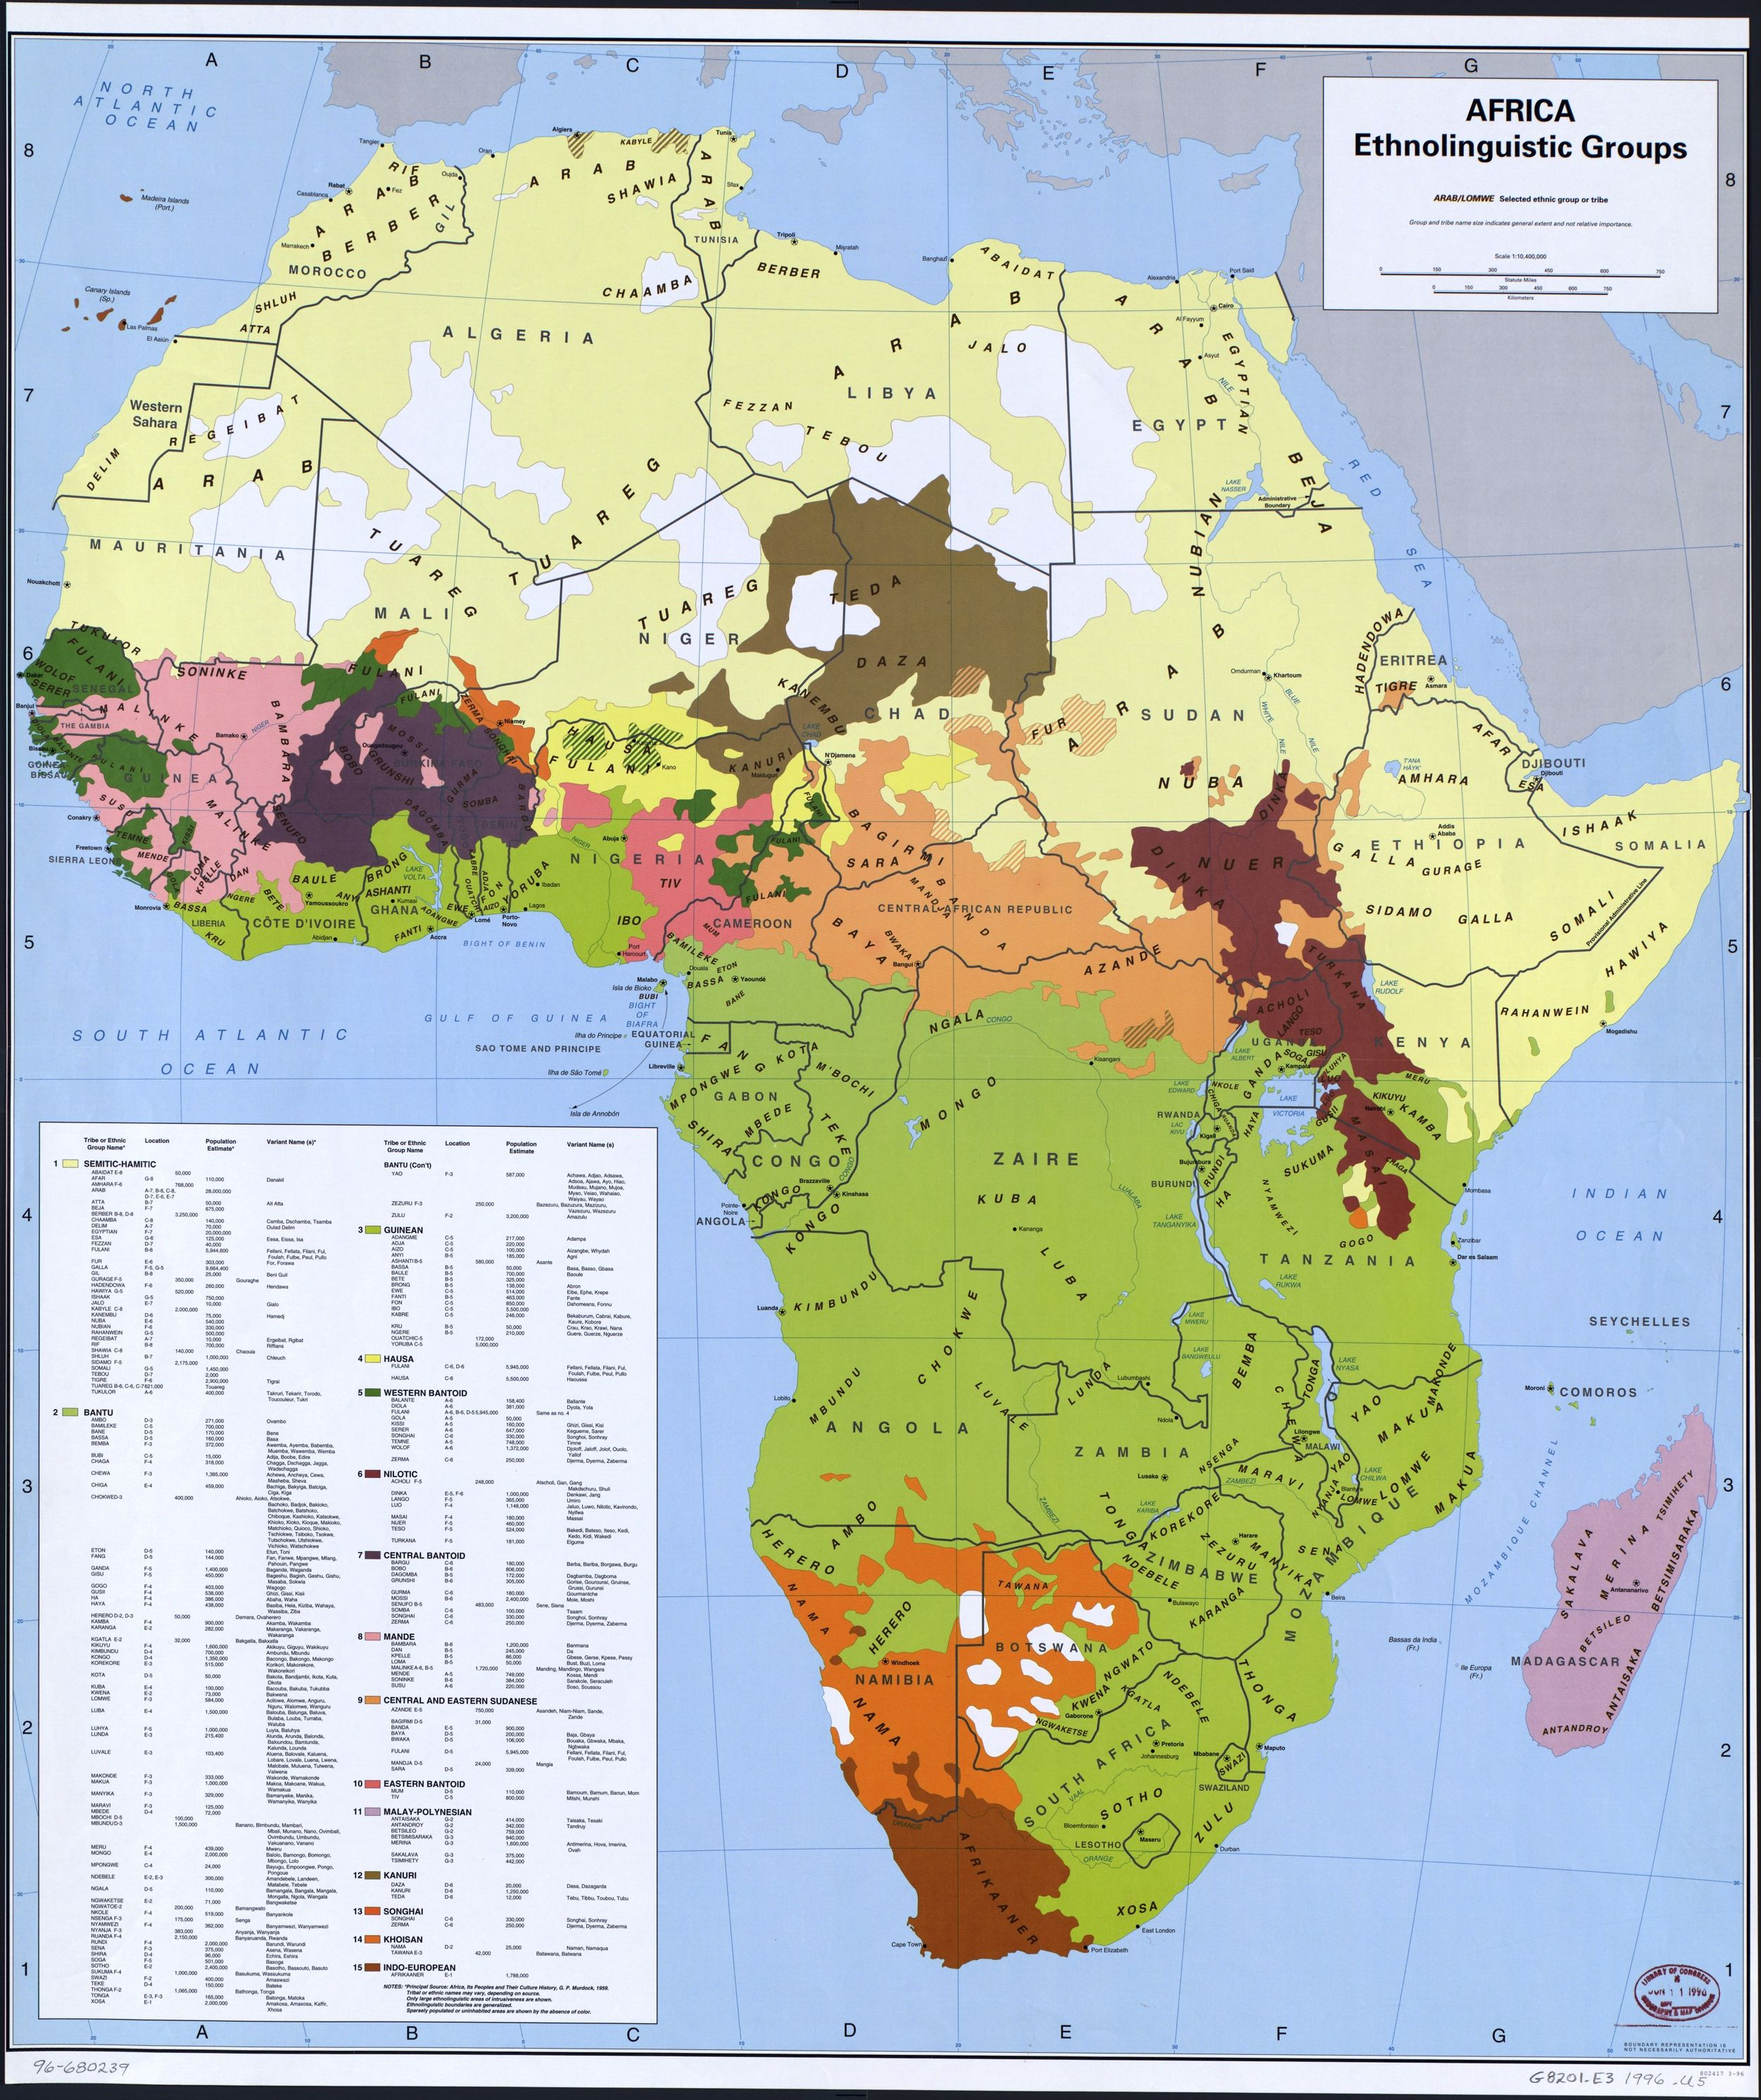 George Murdocks map of the Ethnolinguistic groups of Africa